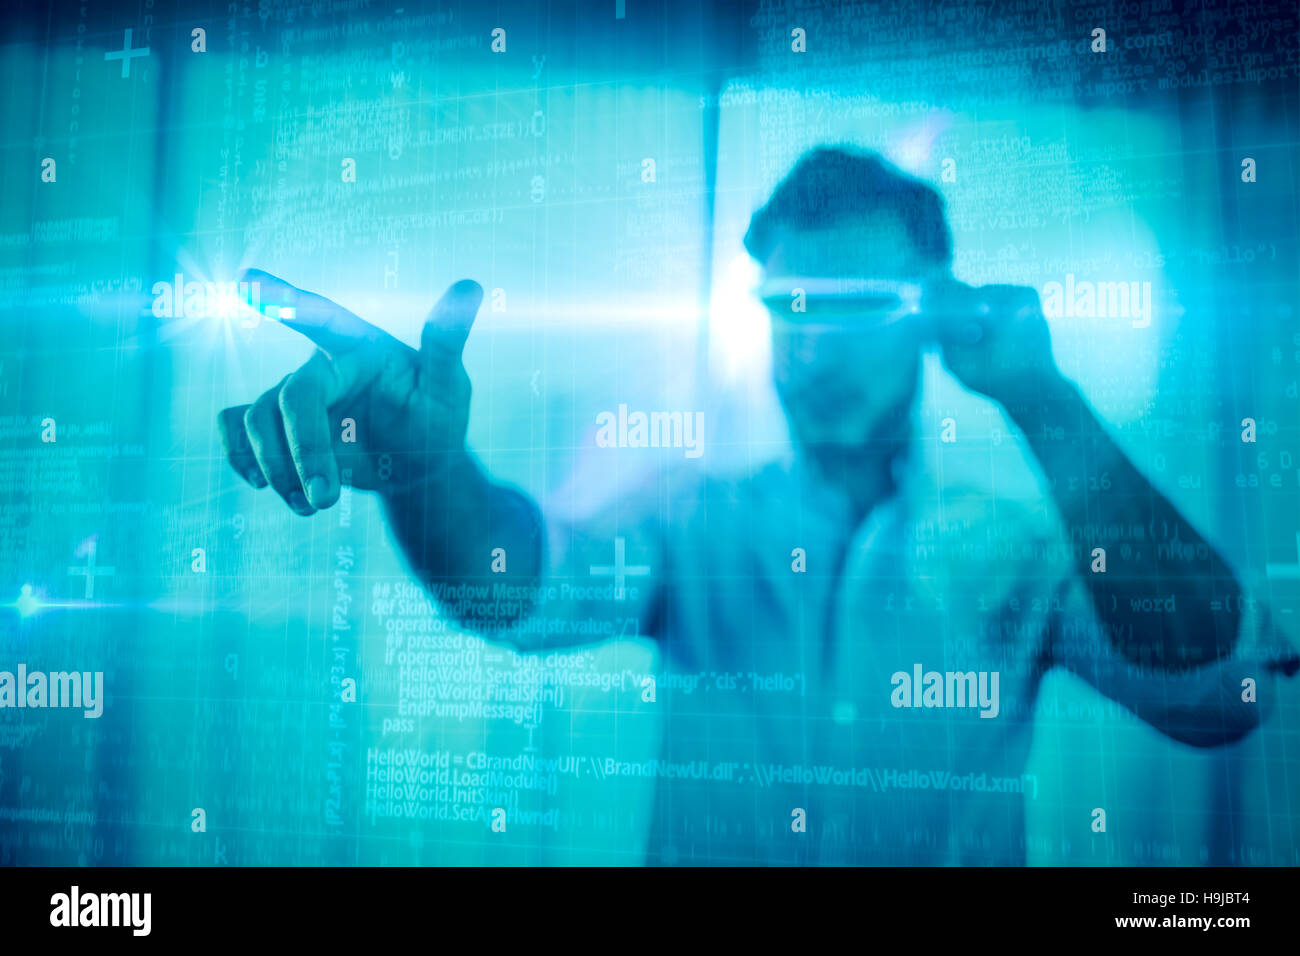 Composite image of some blue matrix and codes - Stock Image